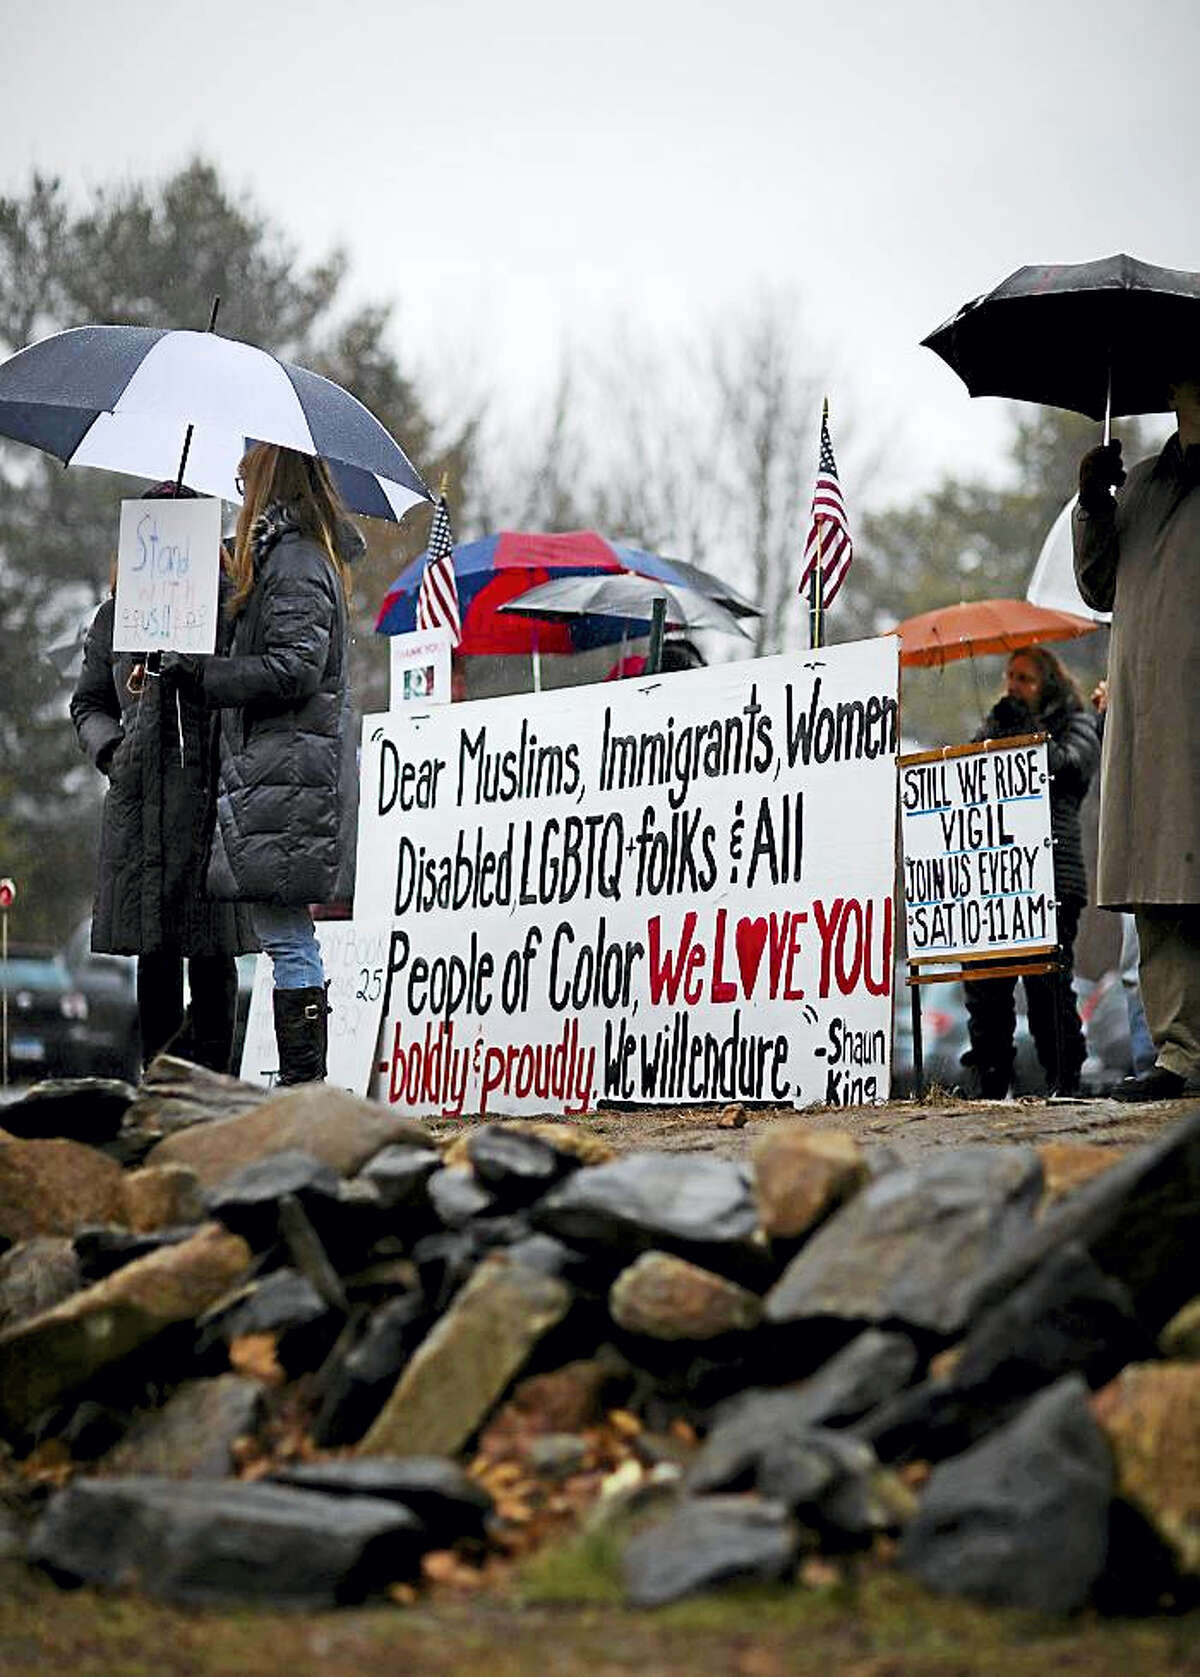 """A Still We Rise vigil, which has taken place weekly since November in East Haddam, is attended by a group of individuals each Saturday. """"The purpose is to keep social justice issues in the forefront of our community consciousness and to stand in solidarity with marginalized groups,"""" according to organizer Edwina Trentham."""